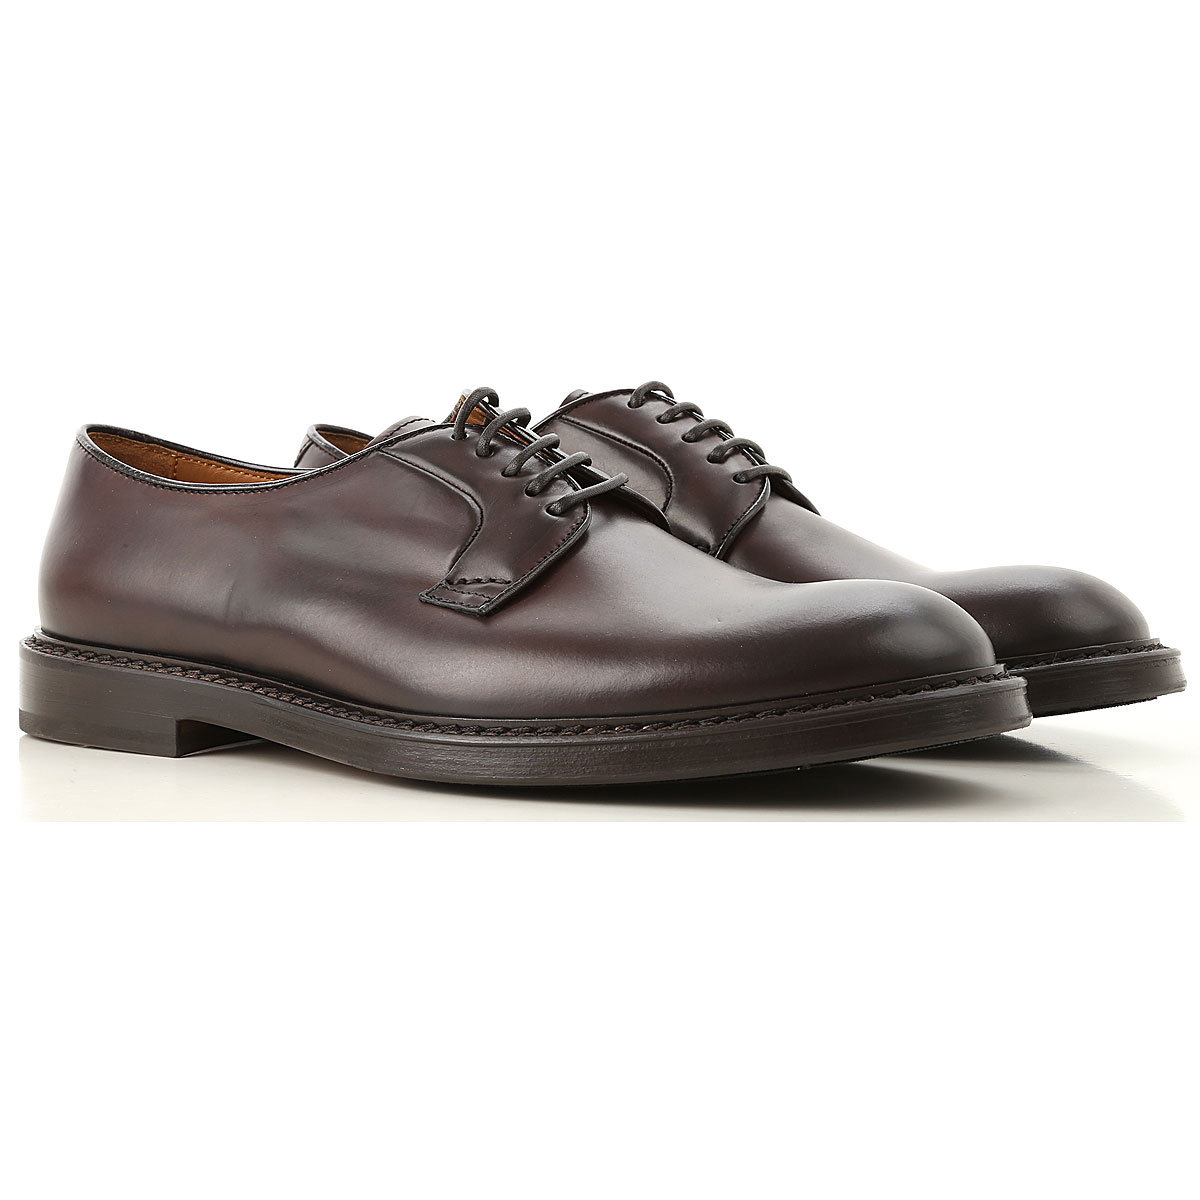 Image of Doucals Lace Up Shoes for Men Oxfords, Derbies and Brogues, Chestnut, Leather, 2017, 10 10.5 7.5 8 9